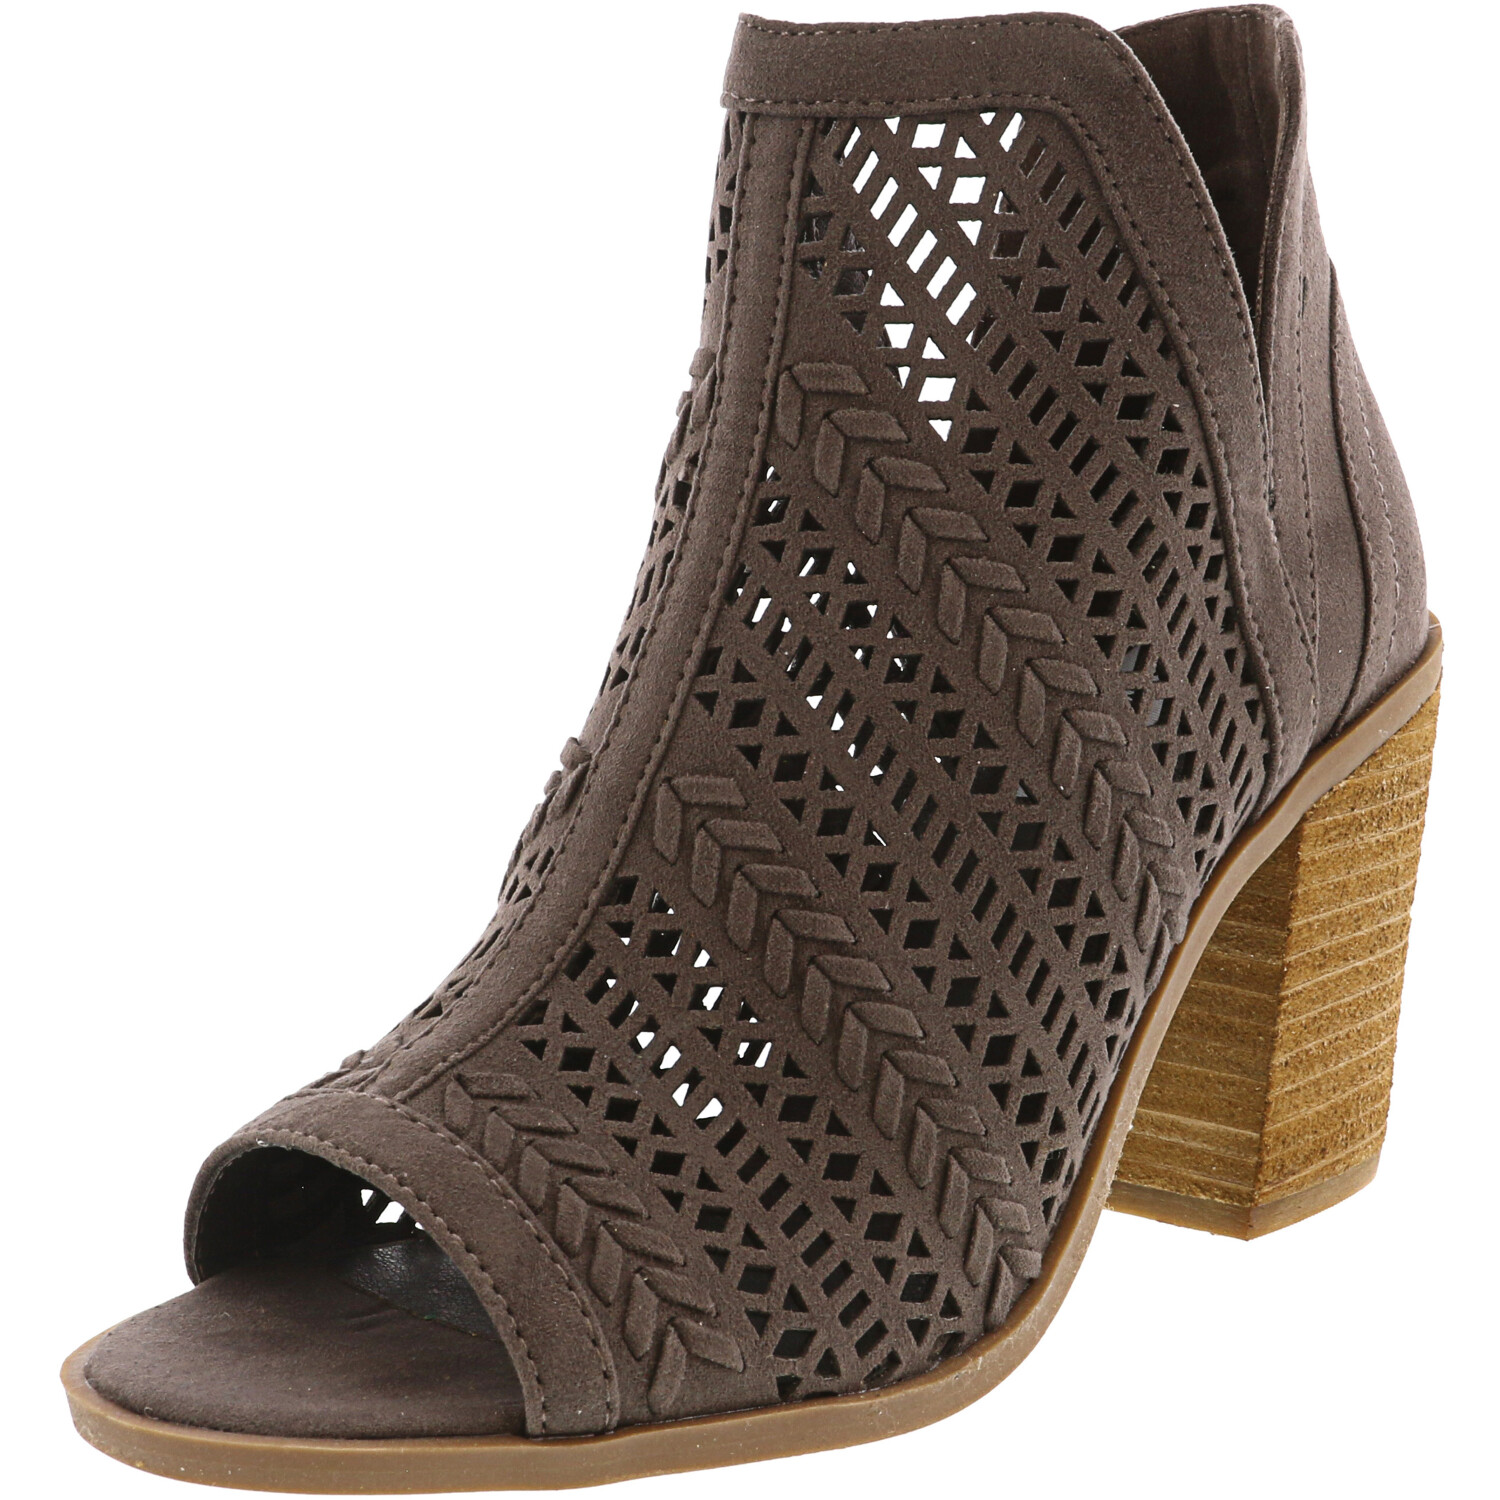 Steve Madden Women's Pyramid Stone Ankle-High Fabric Boot - 6.5M